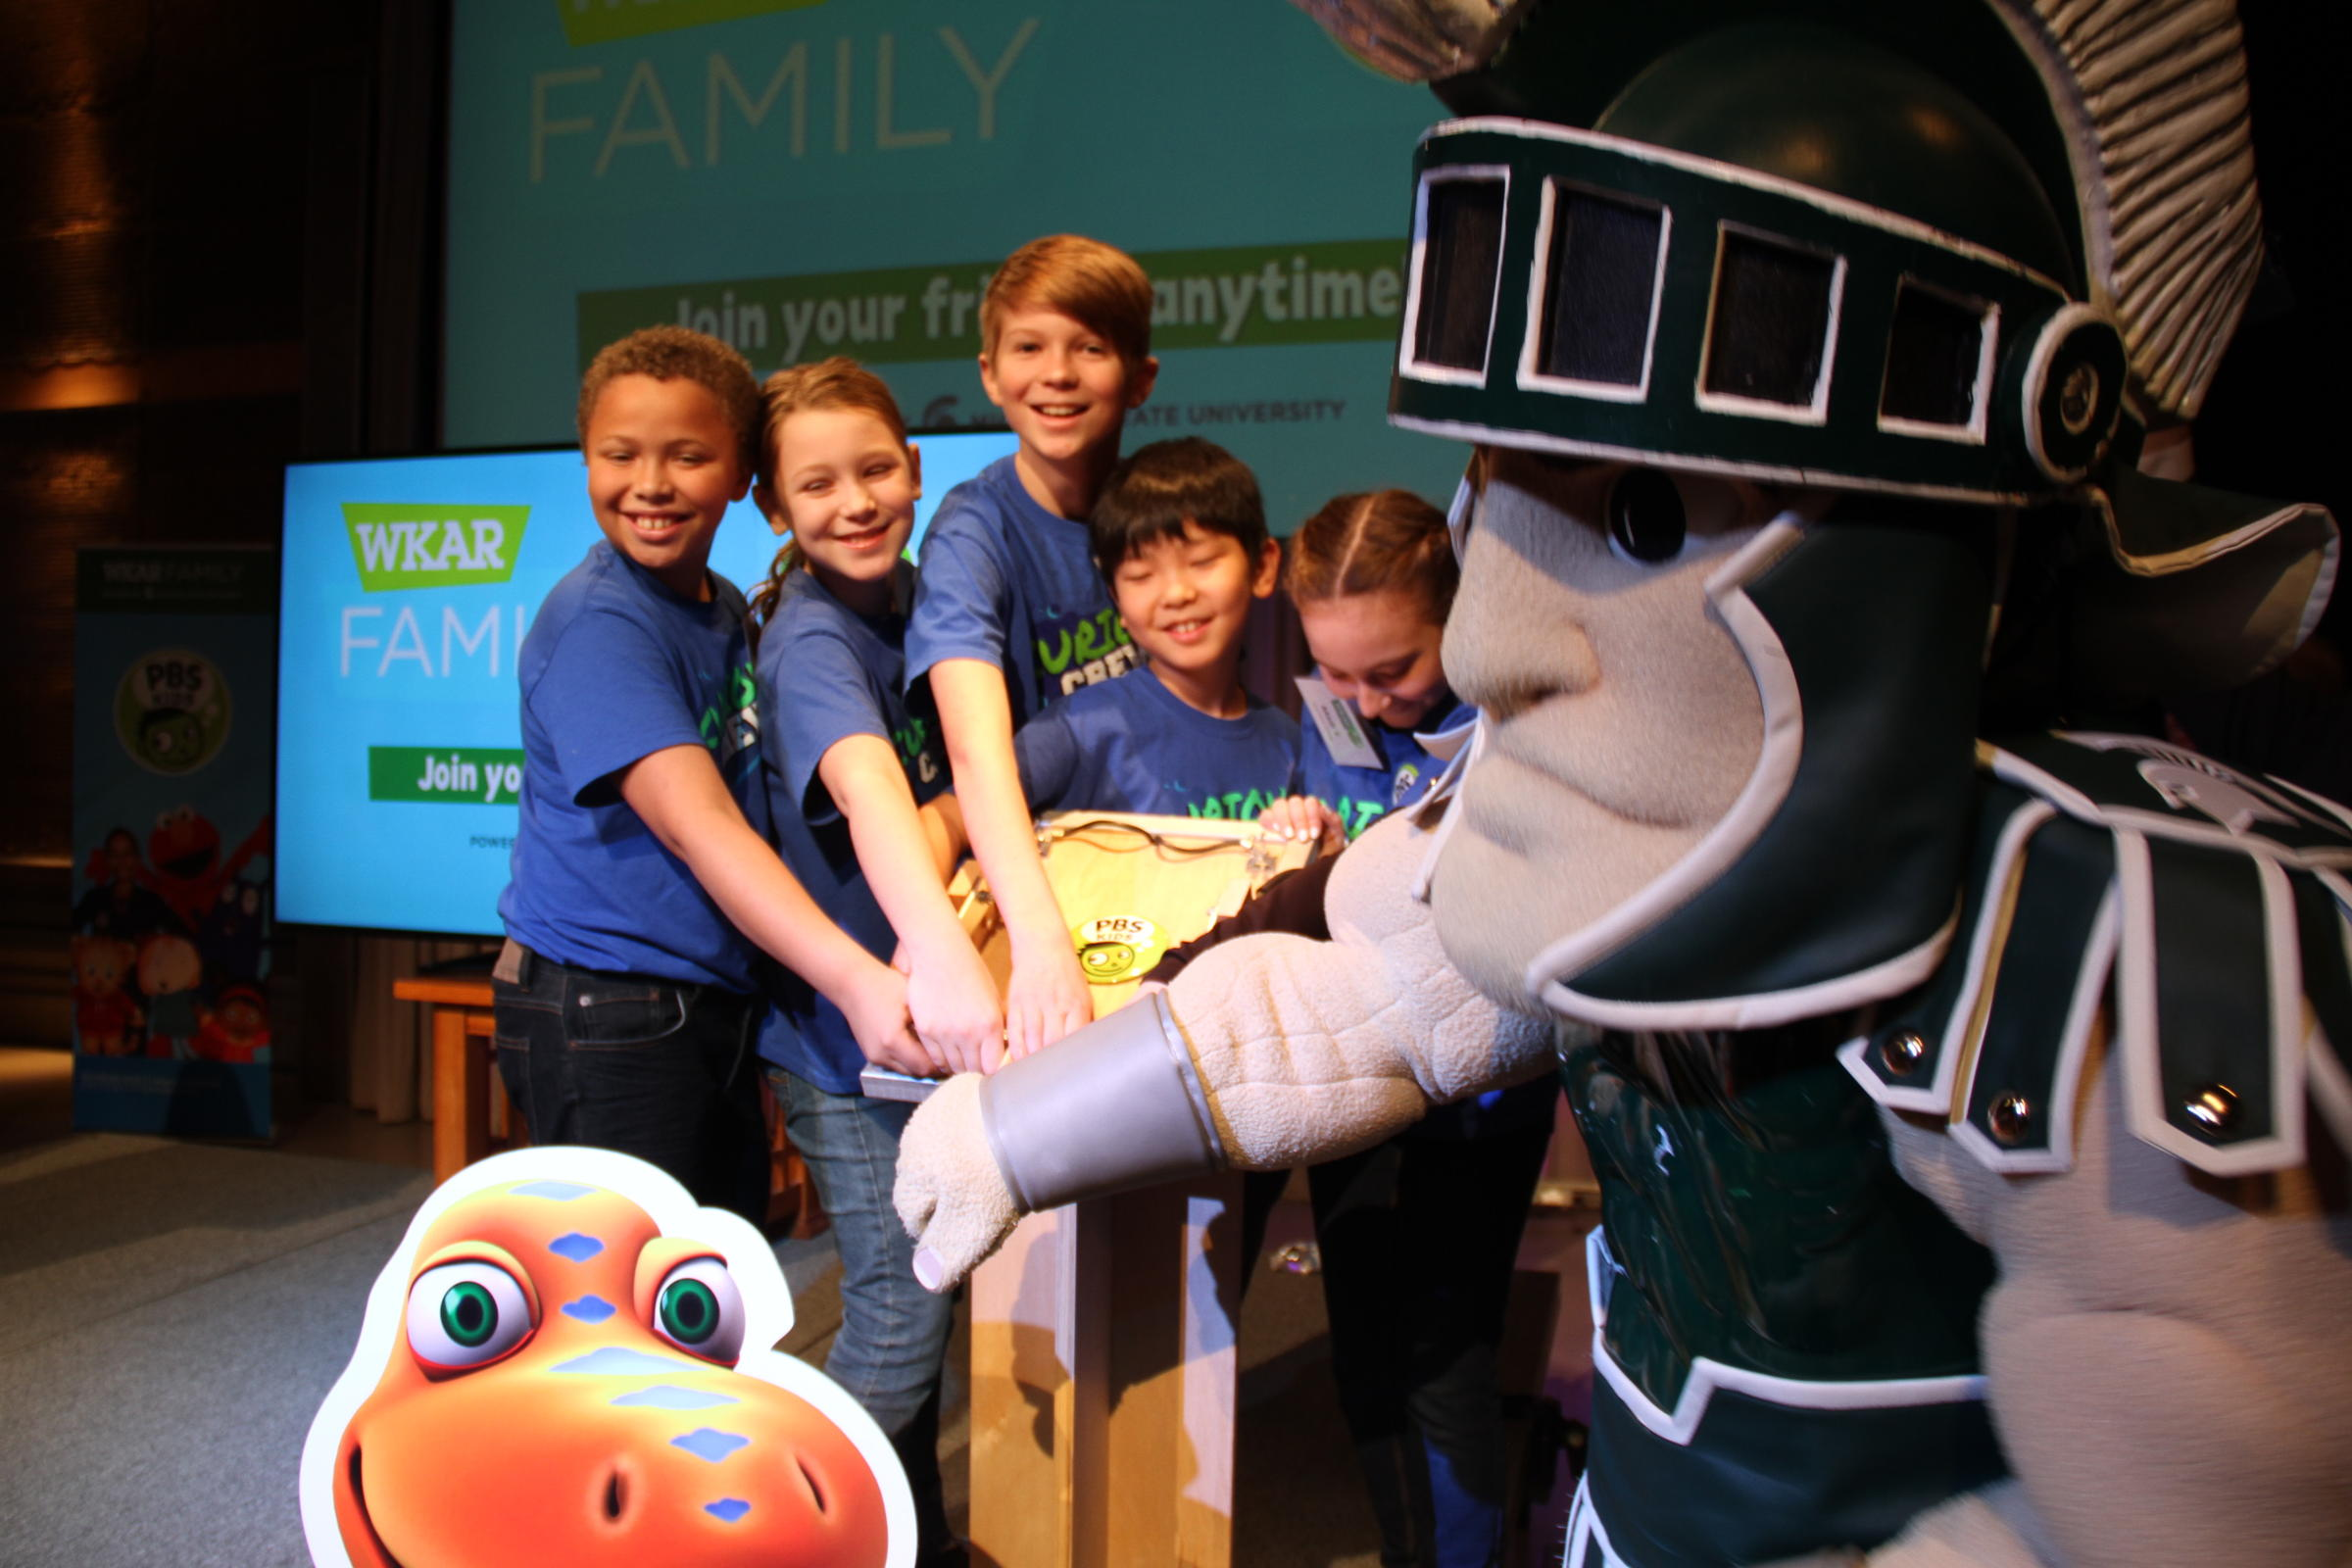 WKAR Launches Free 24/7 Multiplatform PBS KIDS Services | WKAR